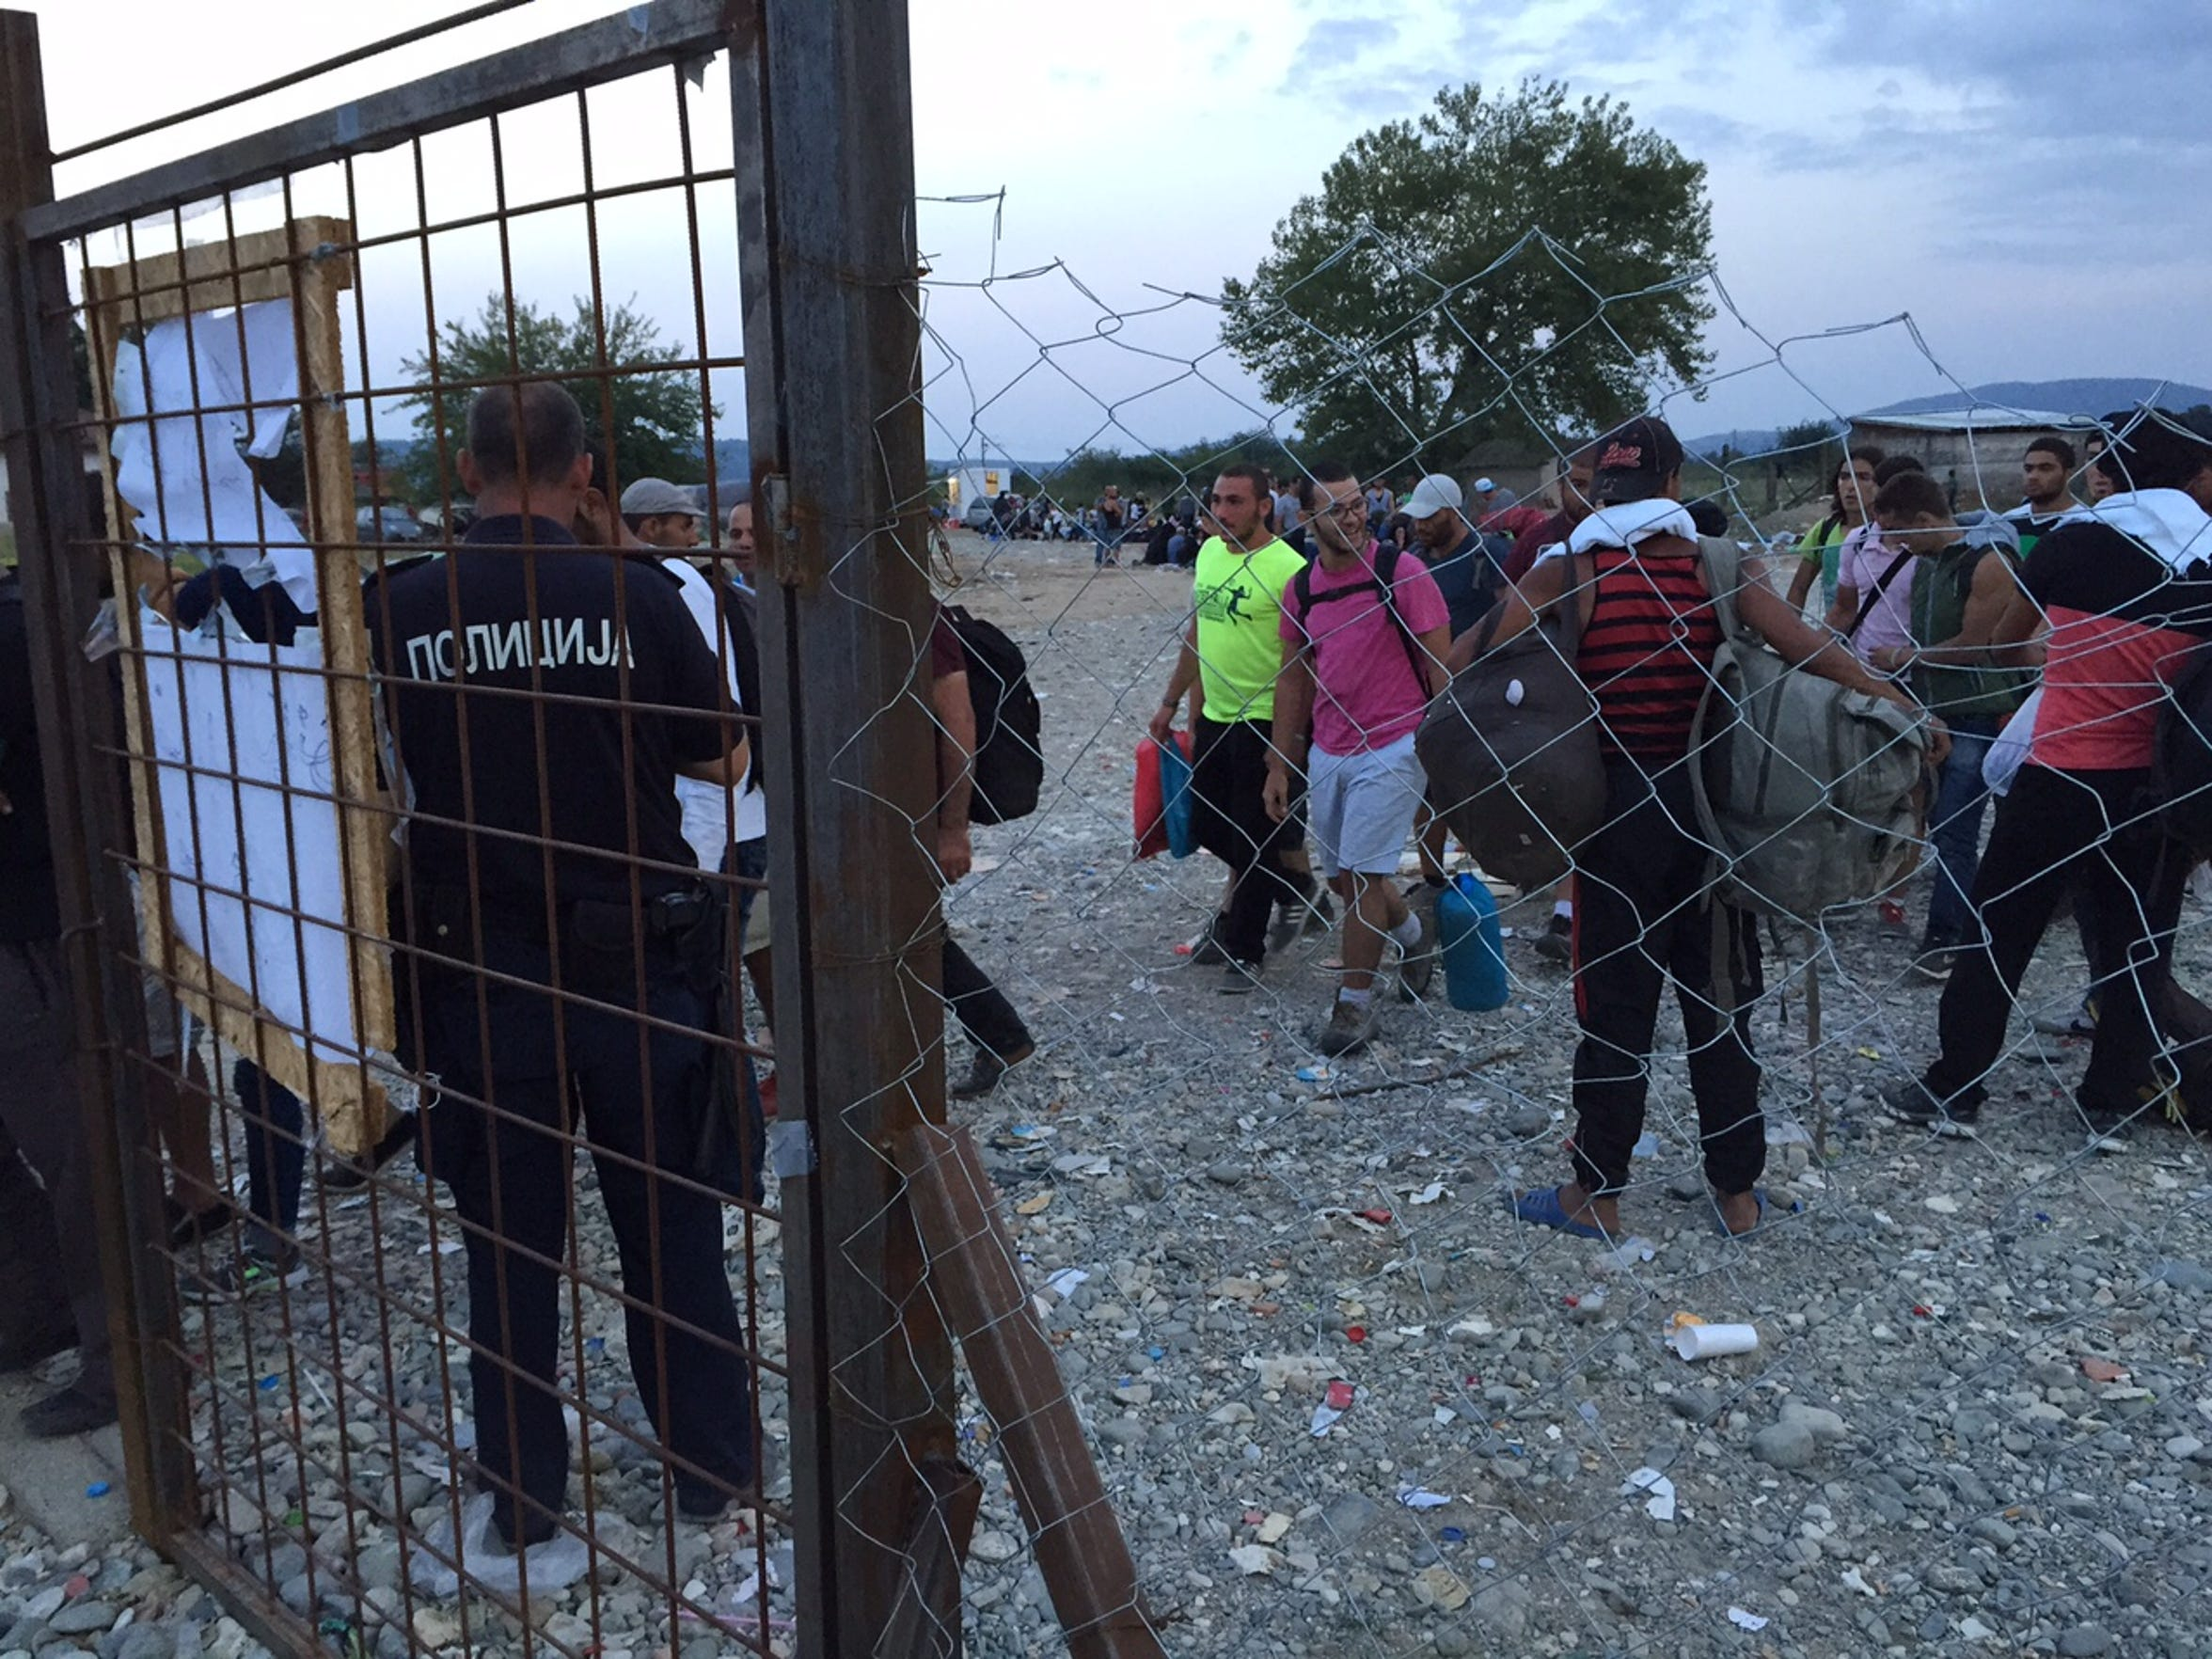 A migrant camp in Gevgelija, Macedonia, on Sept. 20, 2015.